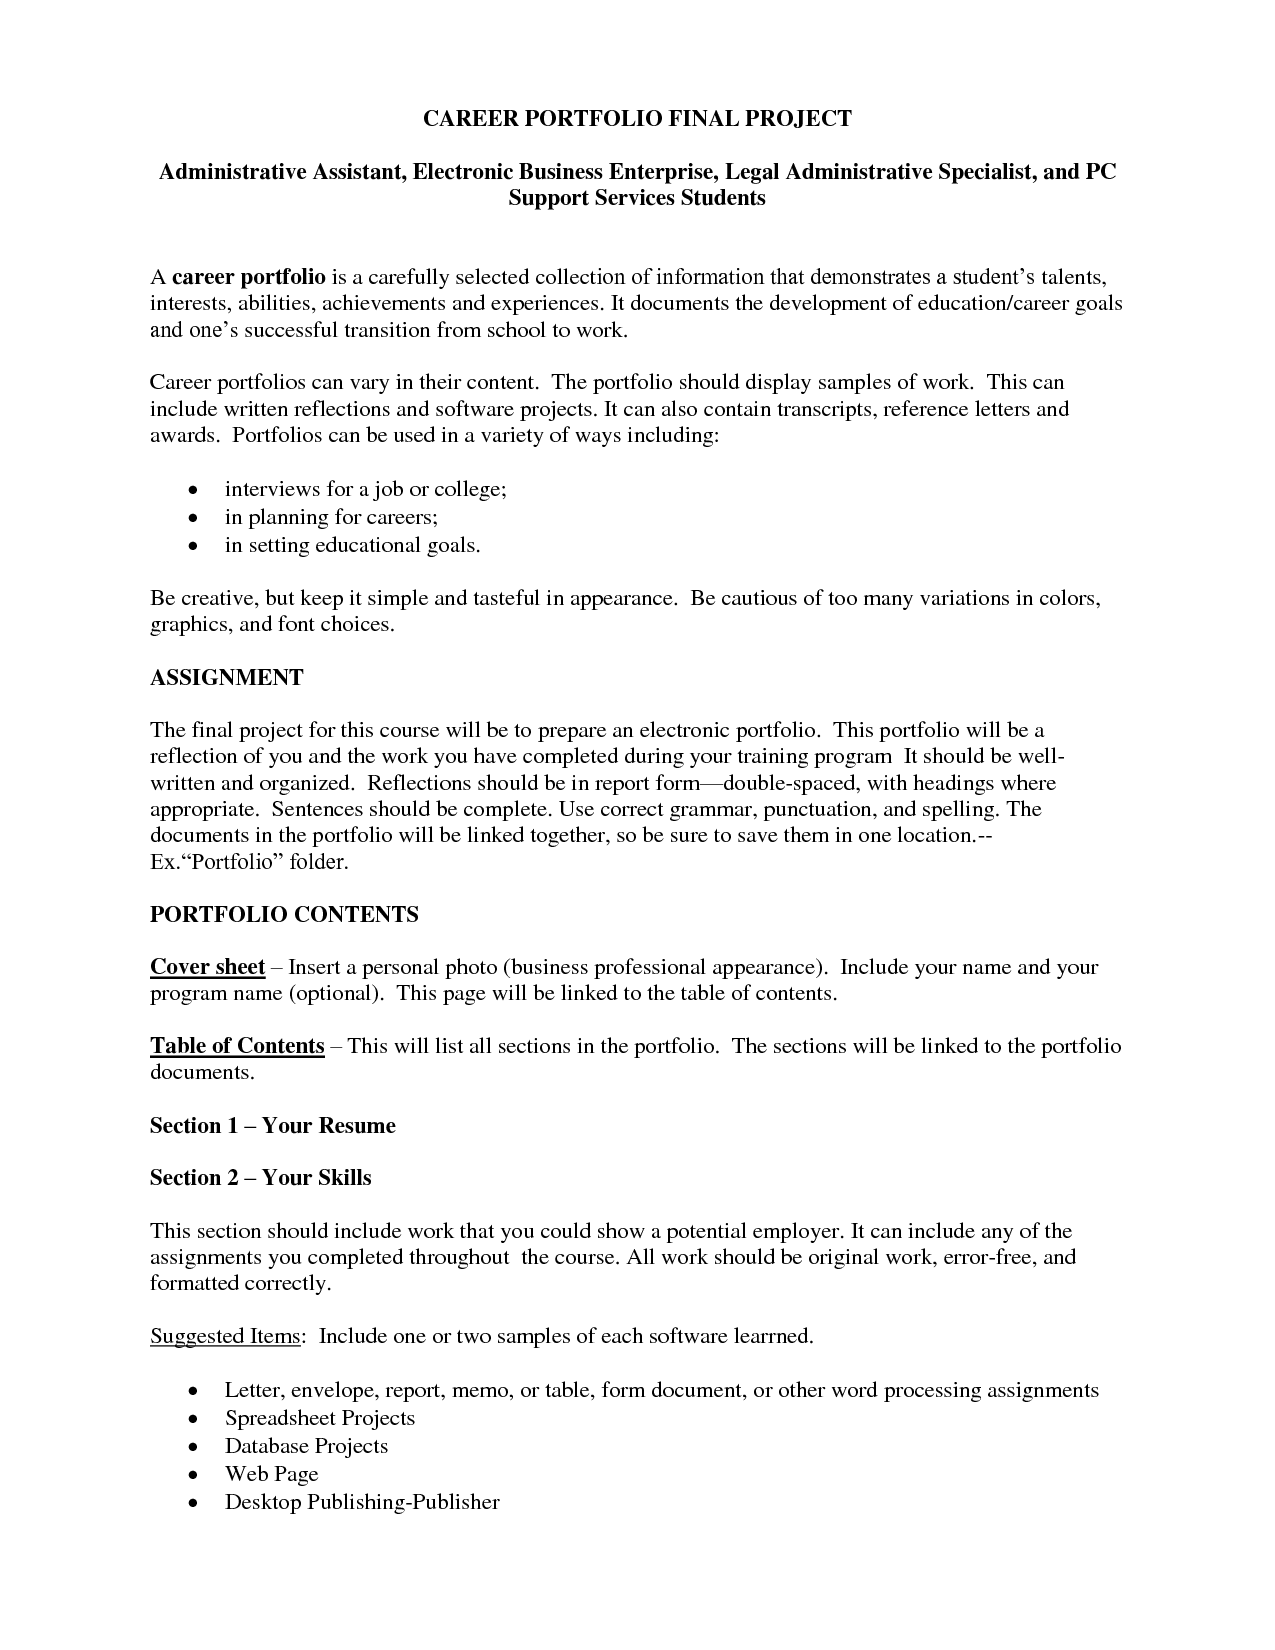 legal administrative resume samples httpersumecomlegal administrative - Resume Objectives For Administrative Assistant